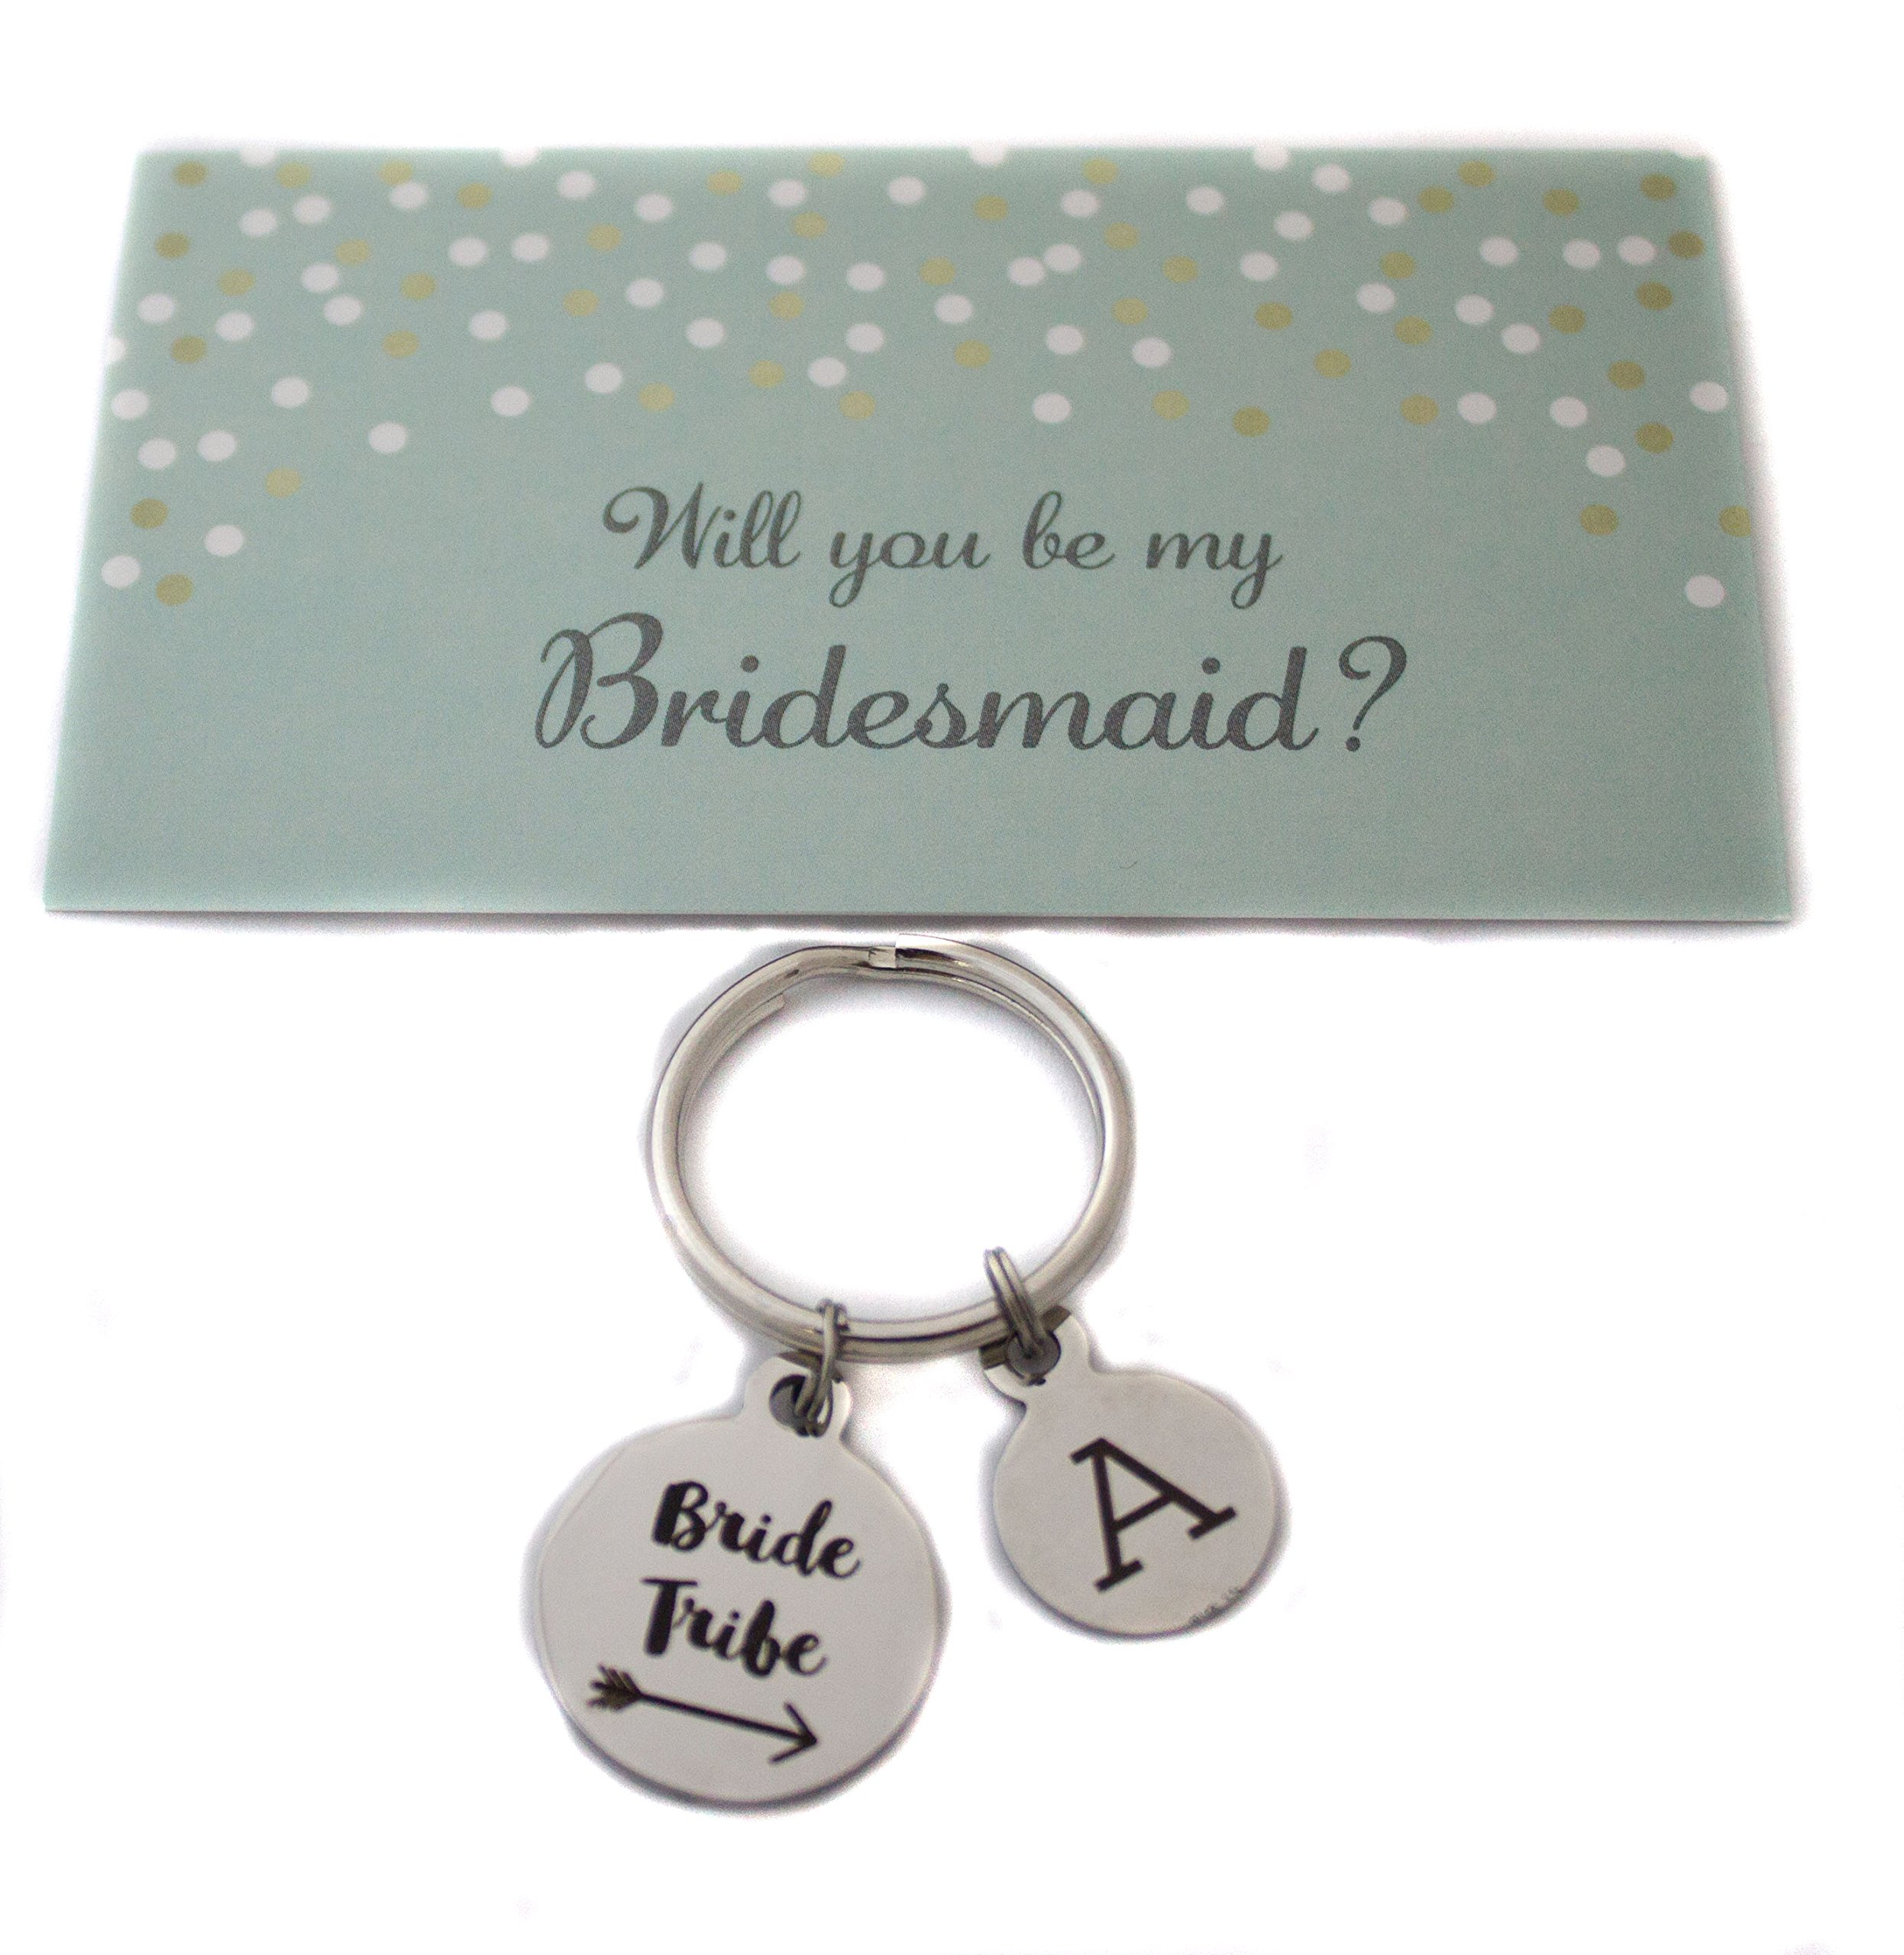 Heart Projects Custom Stainless Steel Bride Tribe Charm Keychain Bag Charm Wedding Party Gift